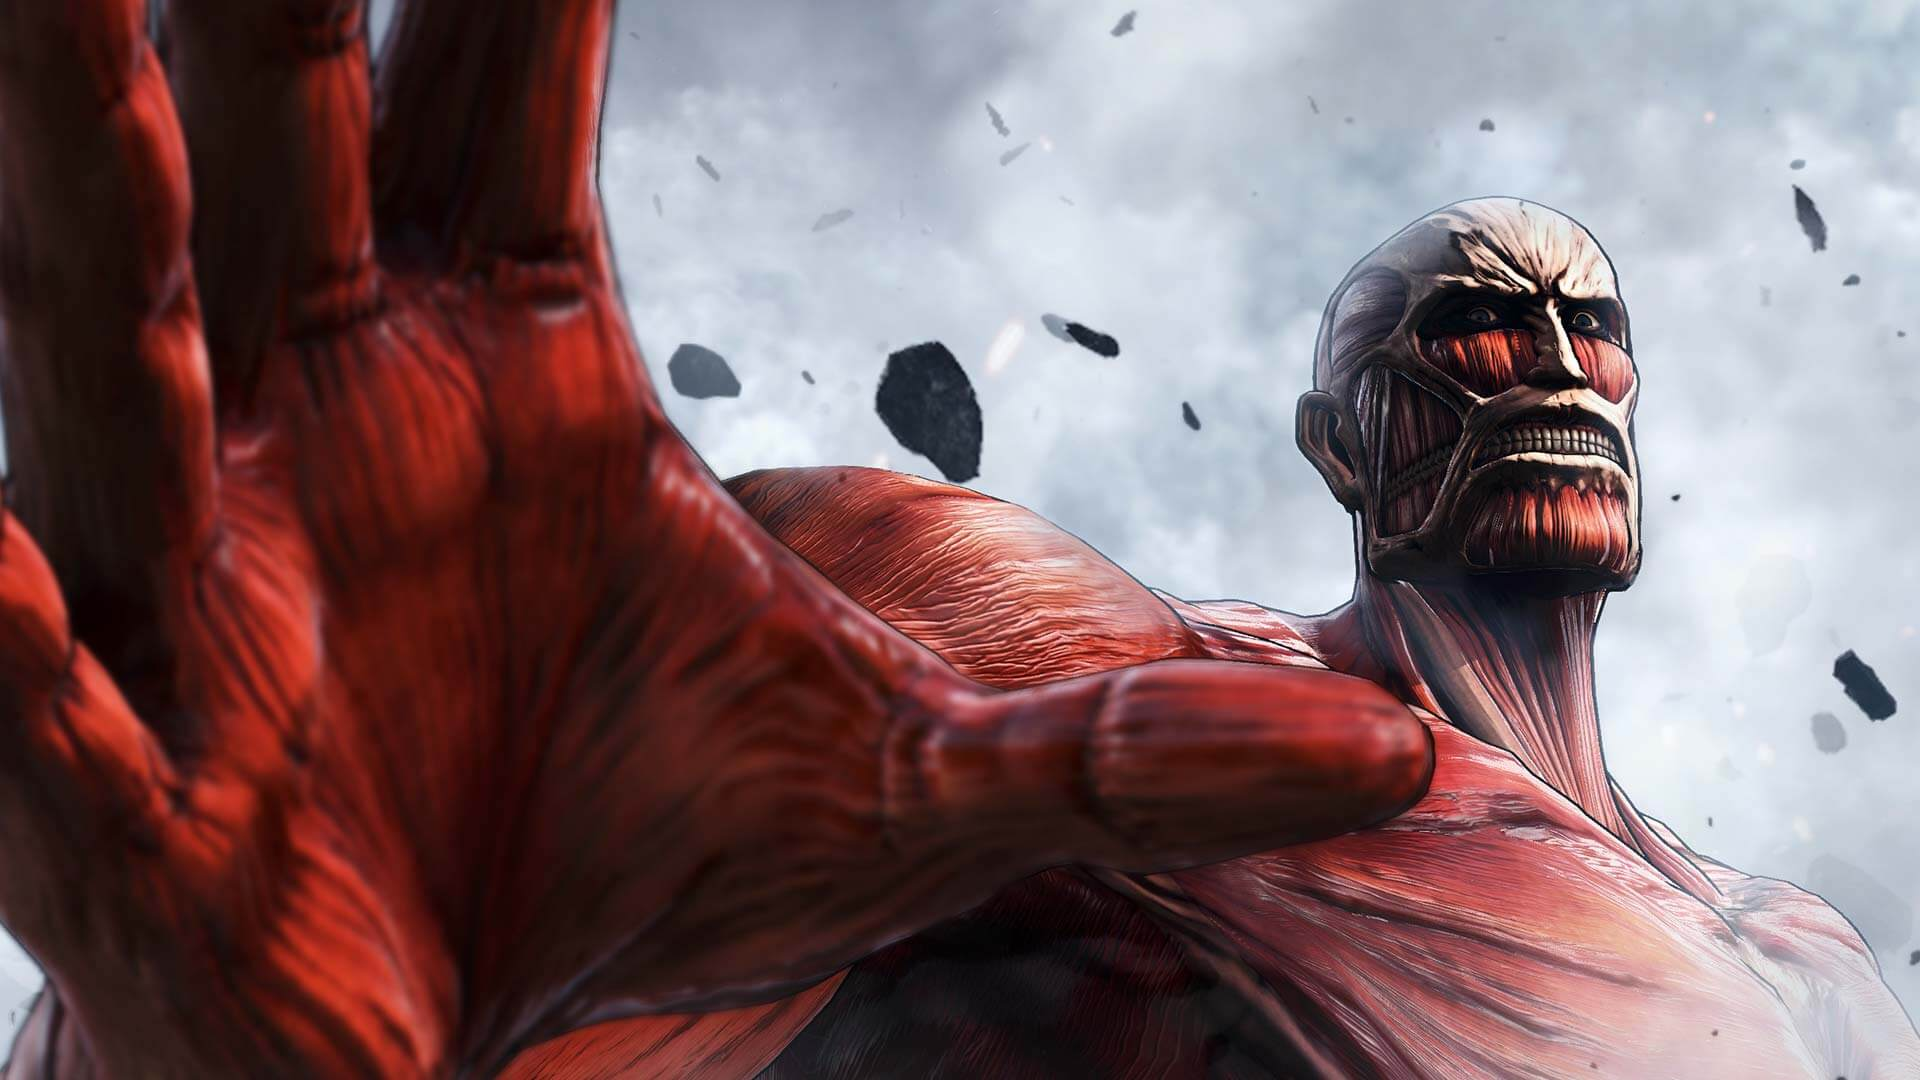 Colossal Titan Wallpaper Attack On Titan 2 By Maxiuchiha22 On Deviantart